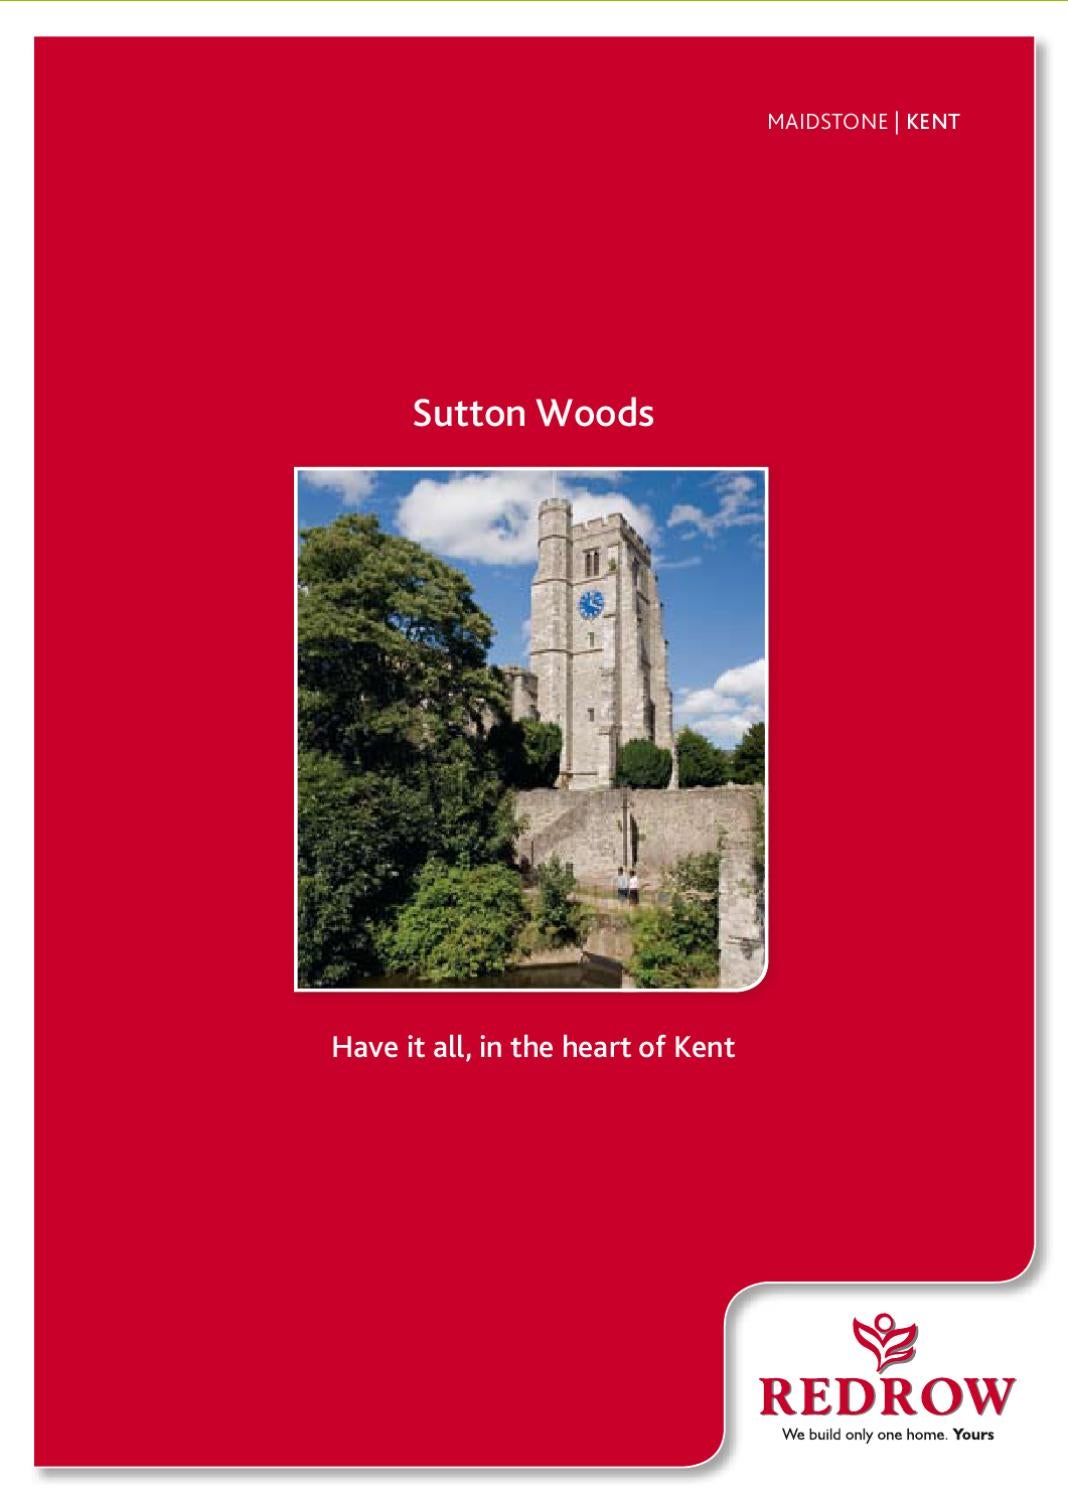 sutton woods redrow homes by issuu